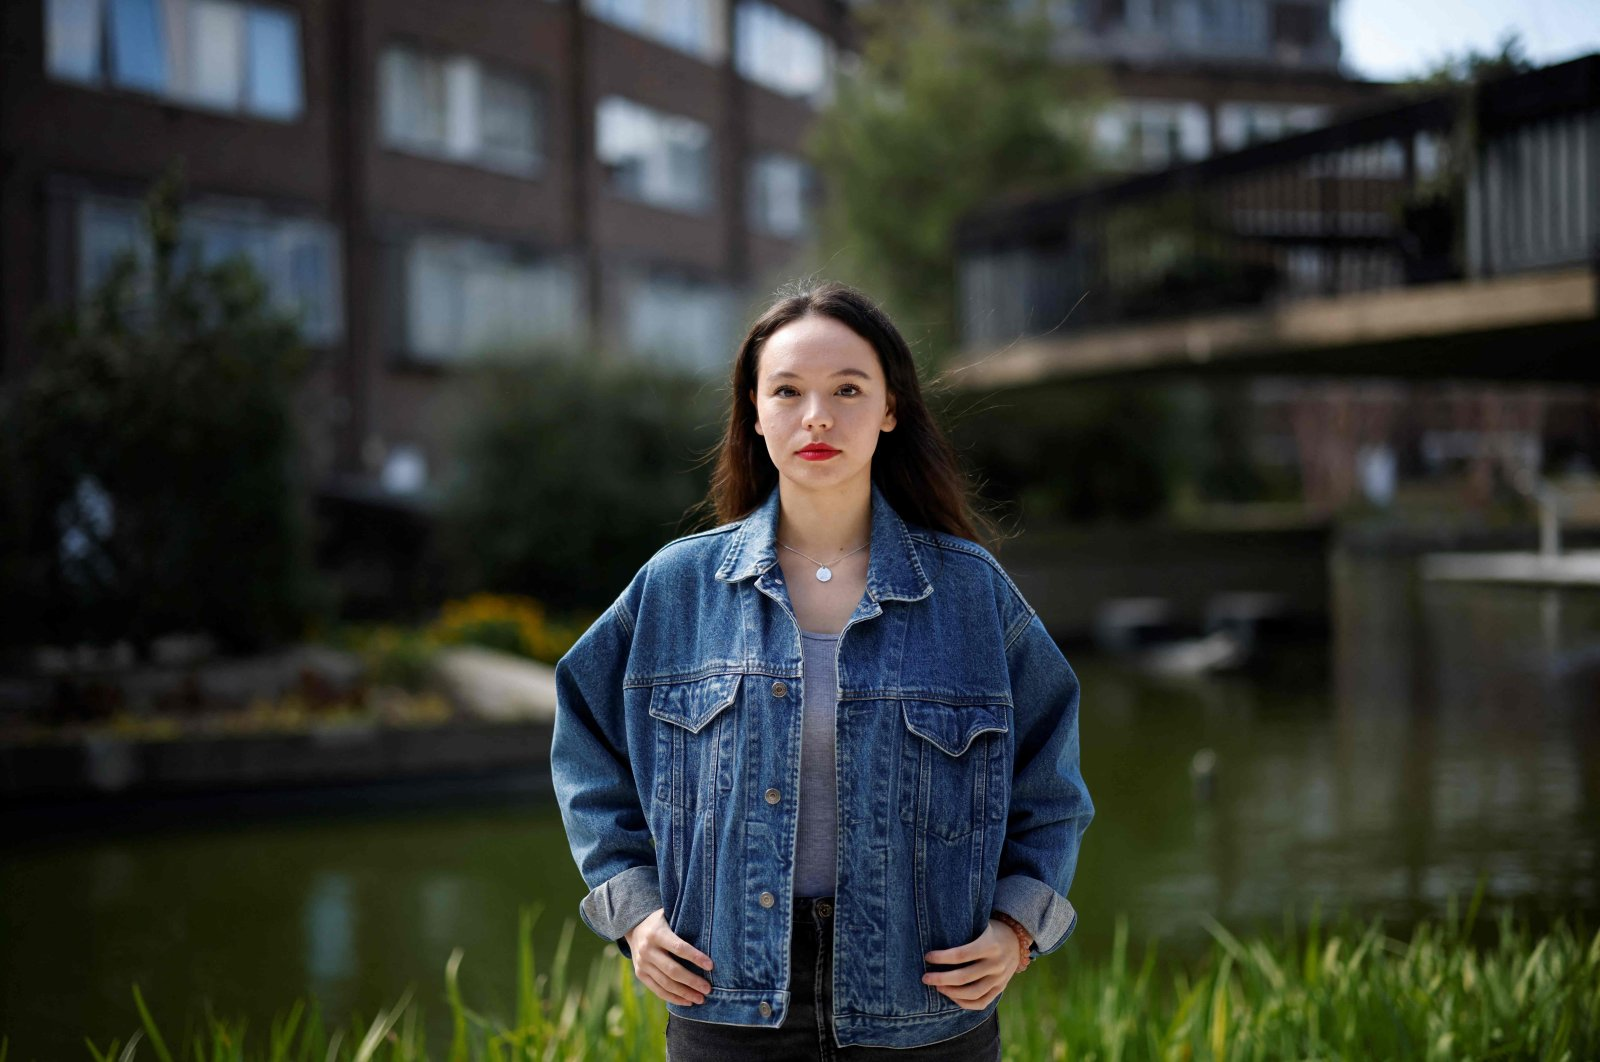 """Creator of the website """"Everyone's Invited,"""" Soma Sara poses during an interview with AFP at The Water Gardens in Westminster, central London, U.K., April 4, 2021. (AFP Photo)"""